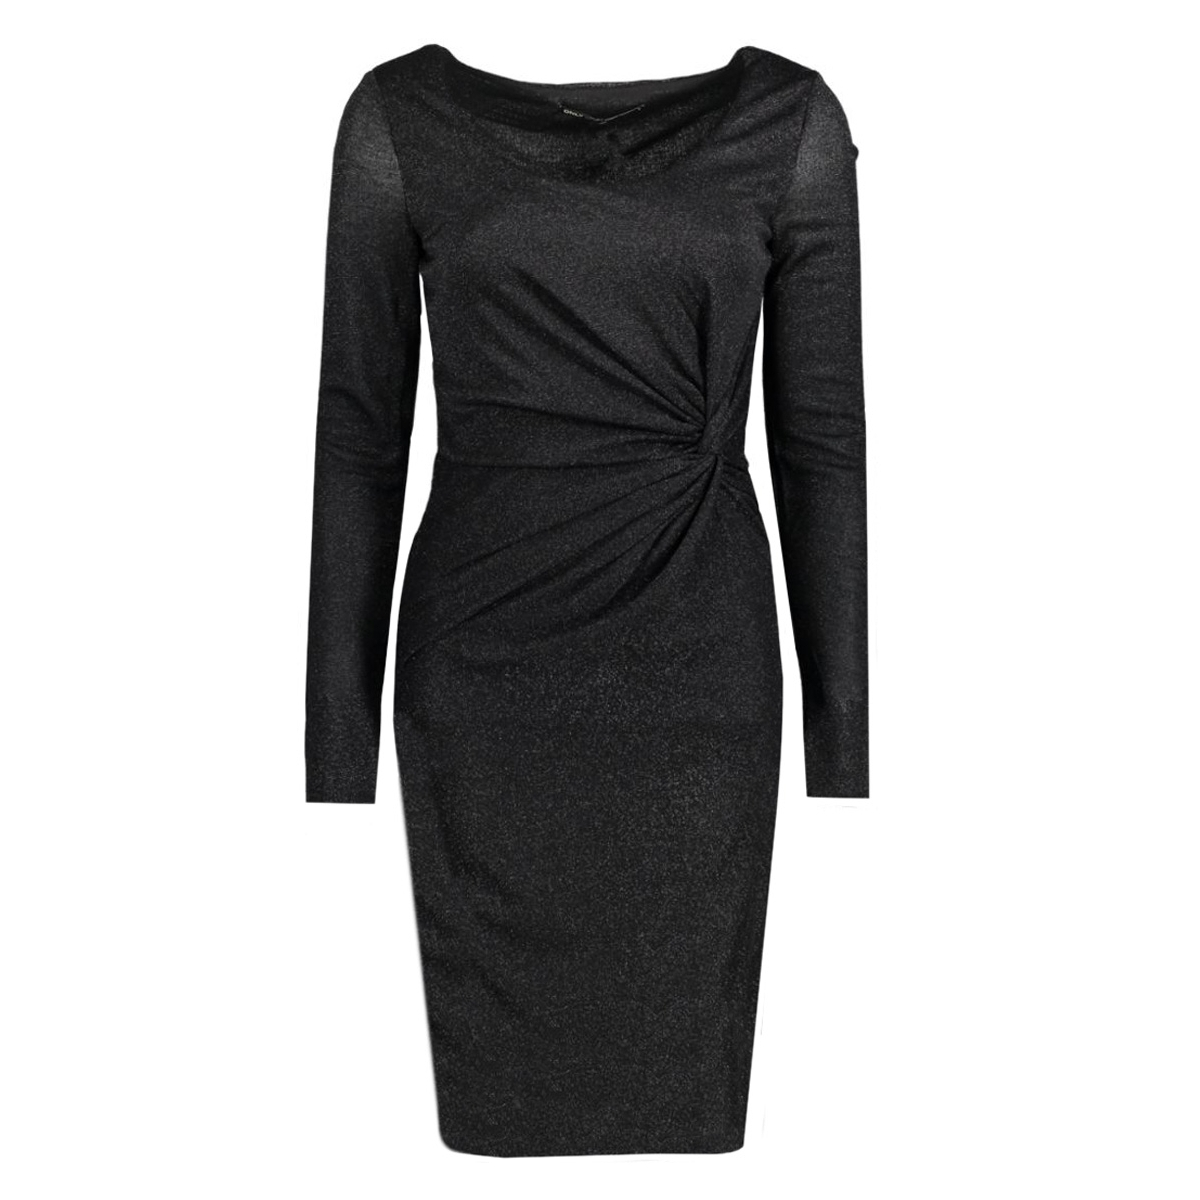 onlramona l/s knot dress jrs 15125833 only jurk black/black lure